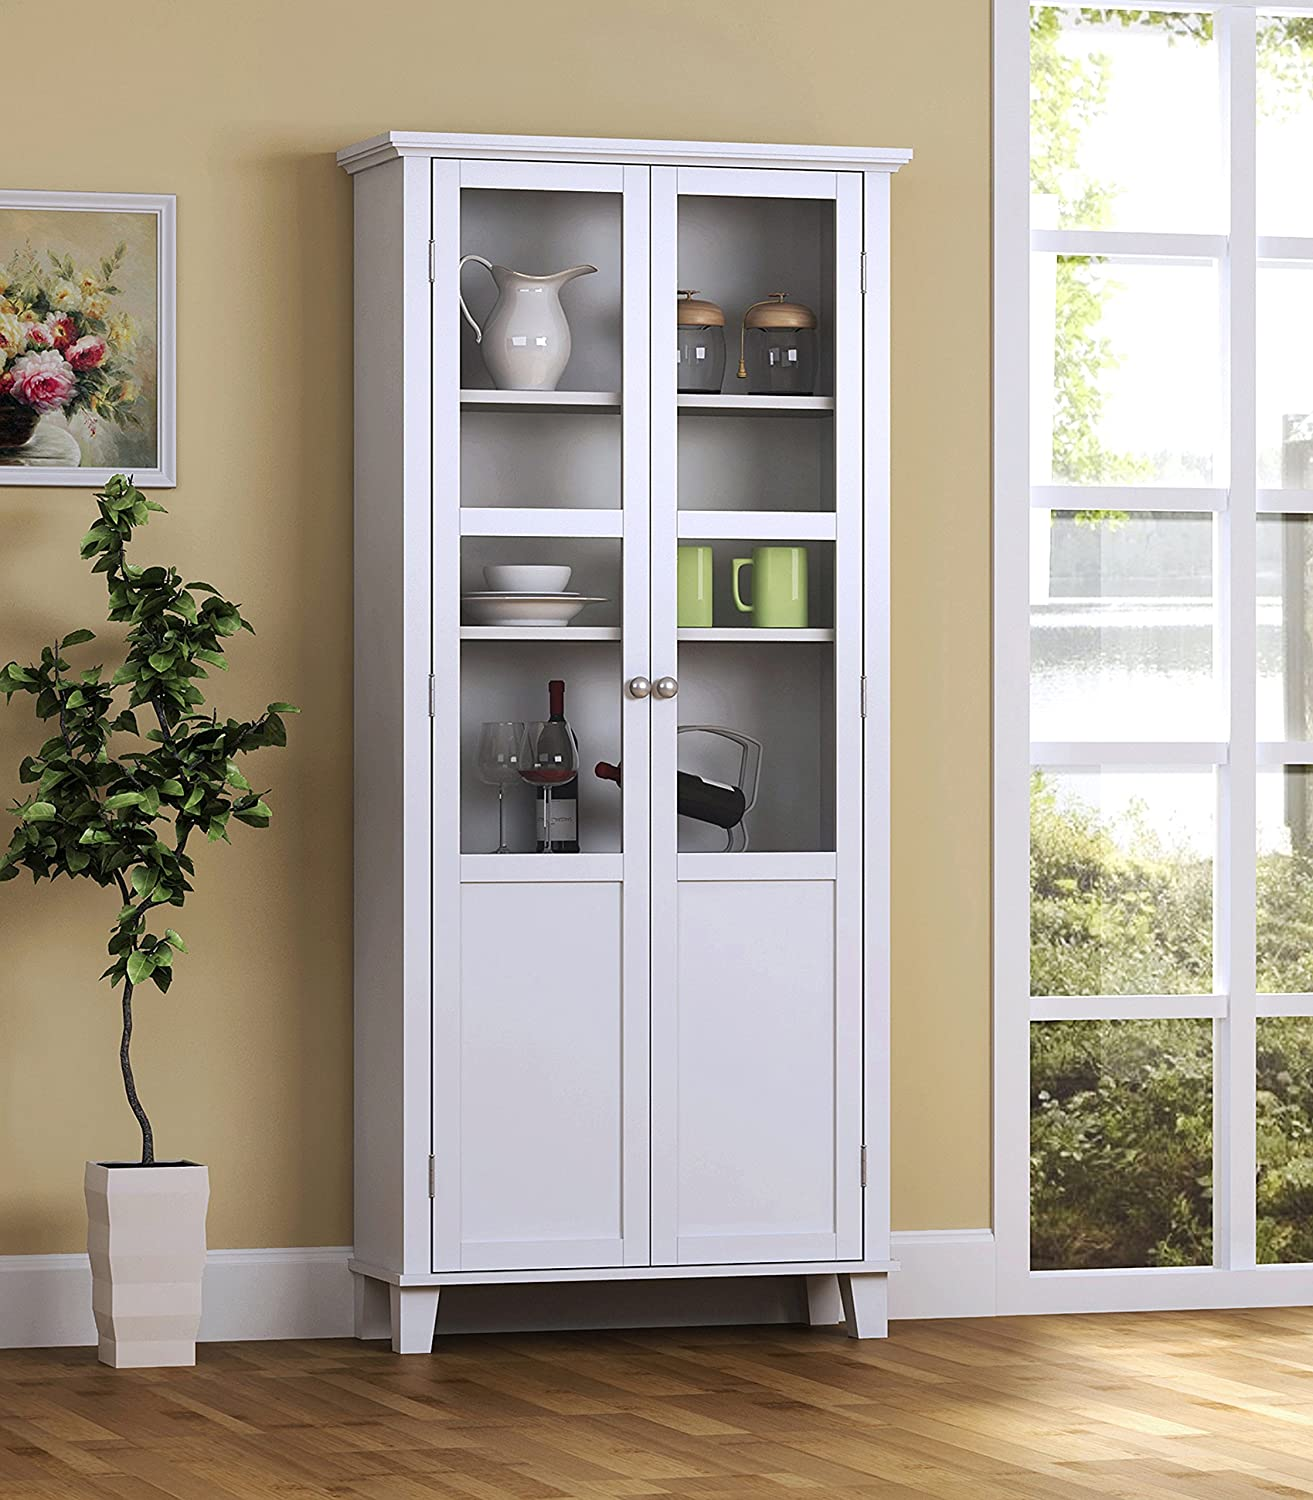 Favorite Amazon.com - Homestar 2 Door Storage Cabinet, White - China Cabinets KC23